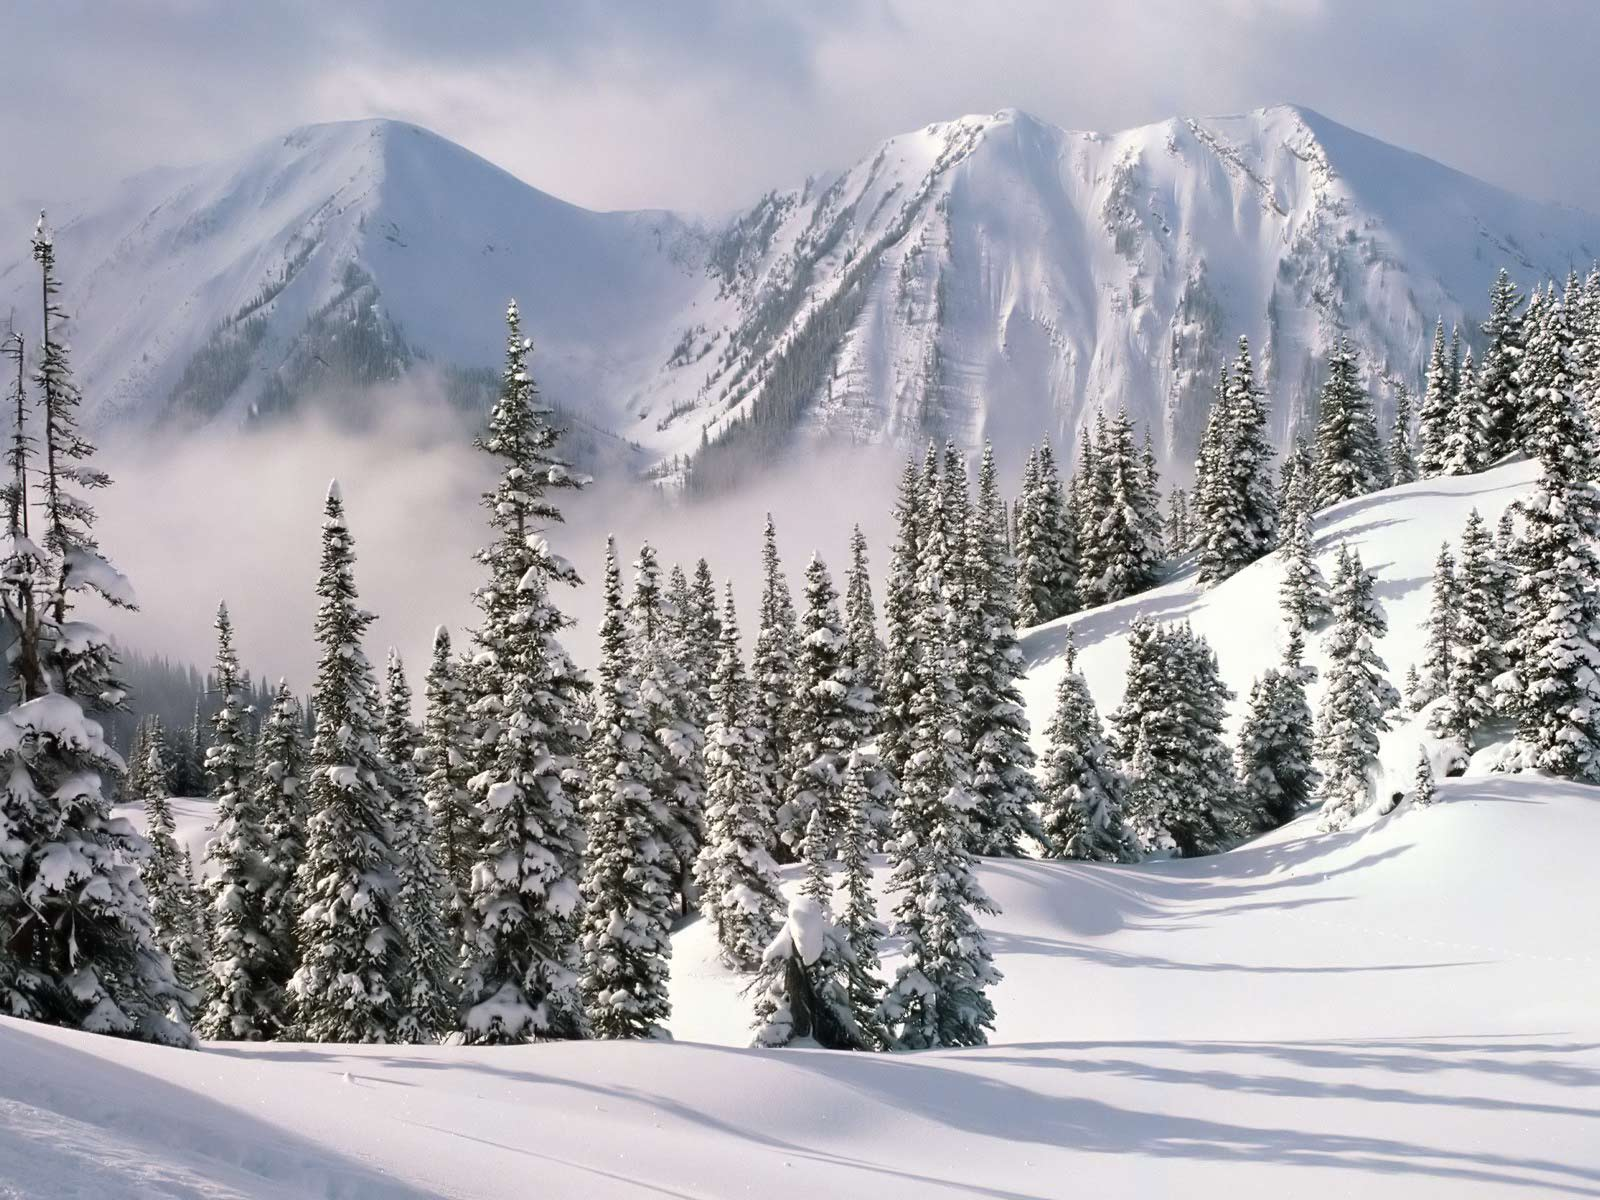 nature desktop wallpaper winter Wallpaper Express is all 1600x1200